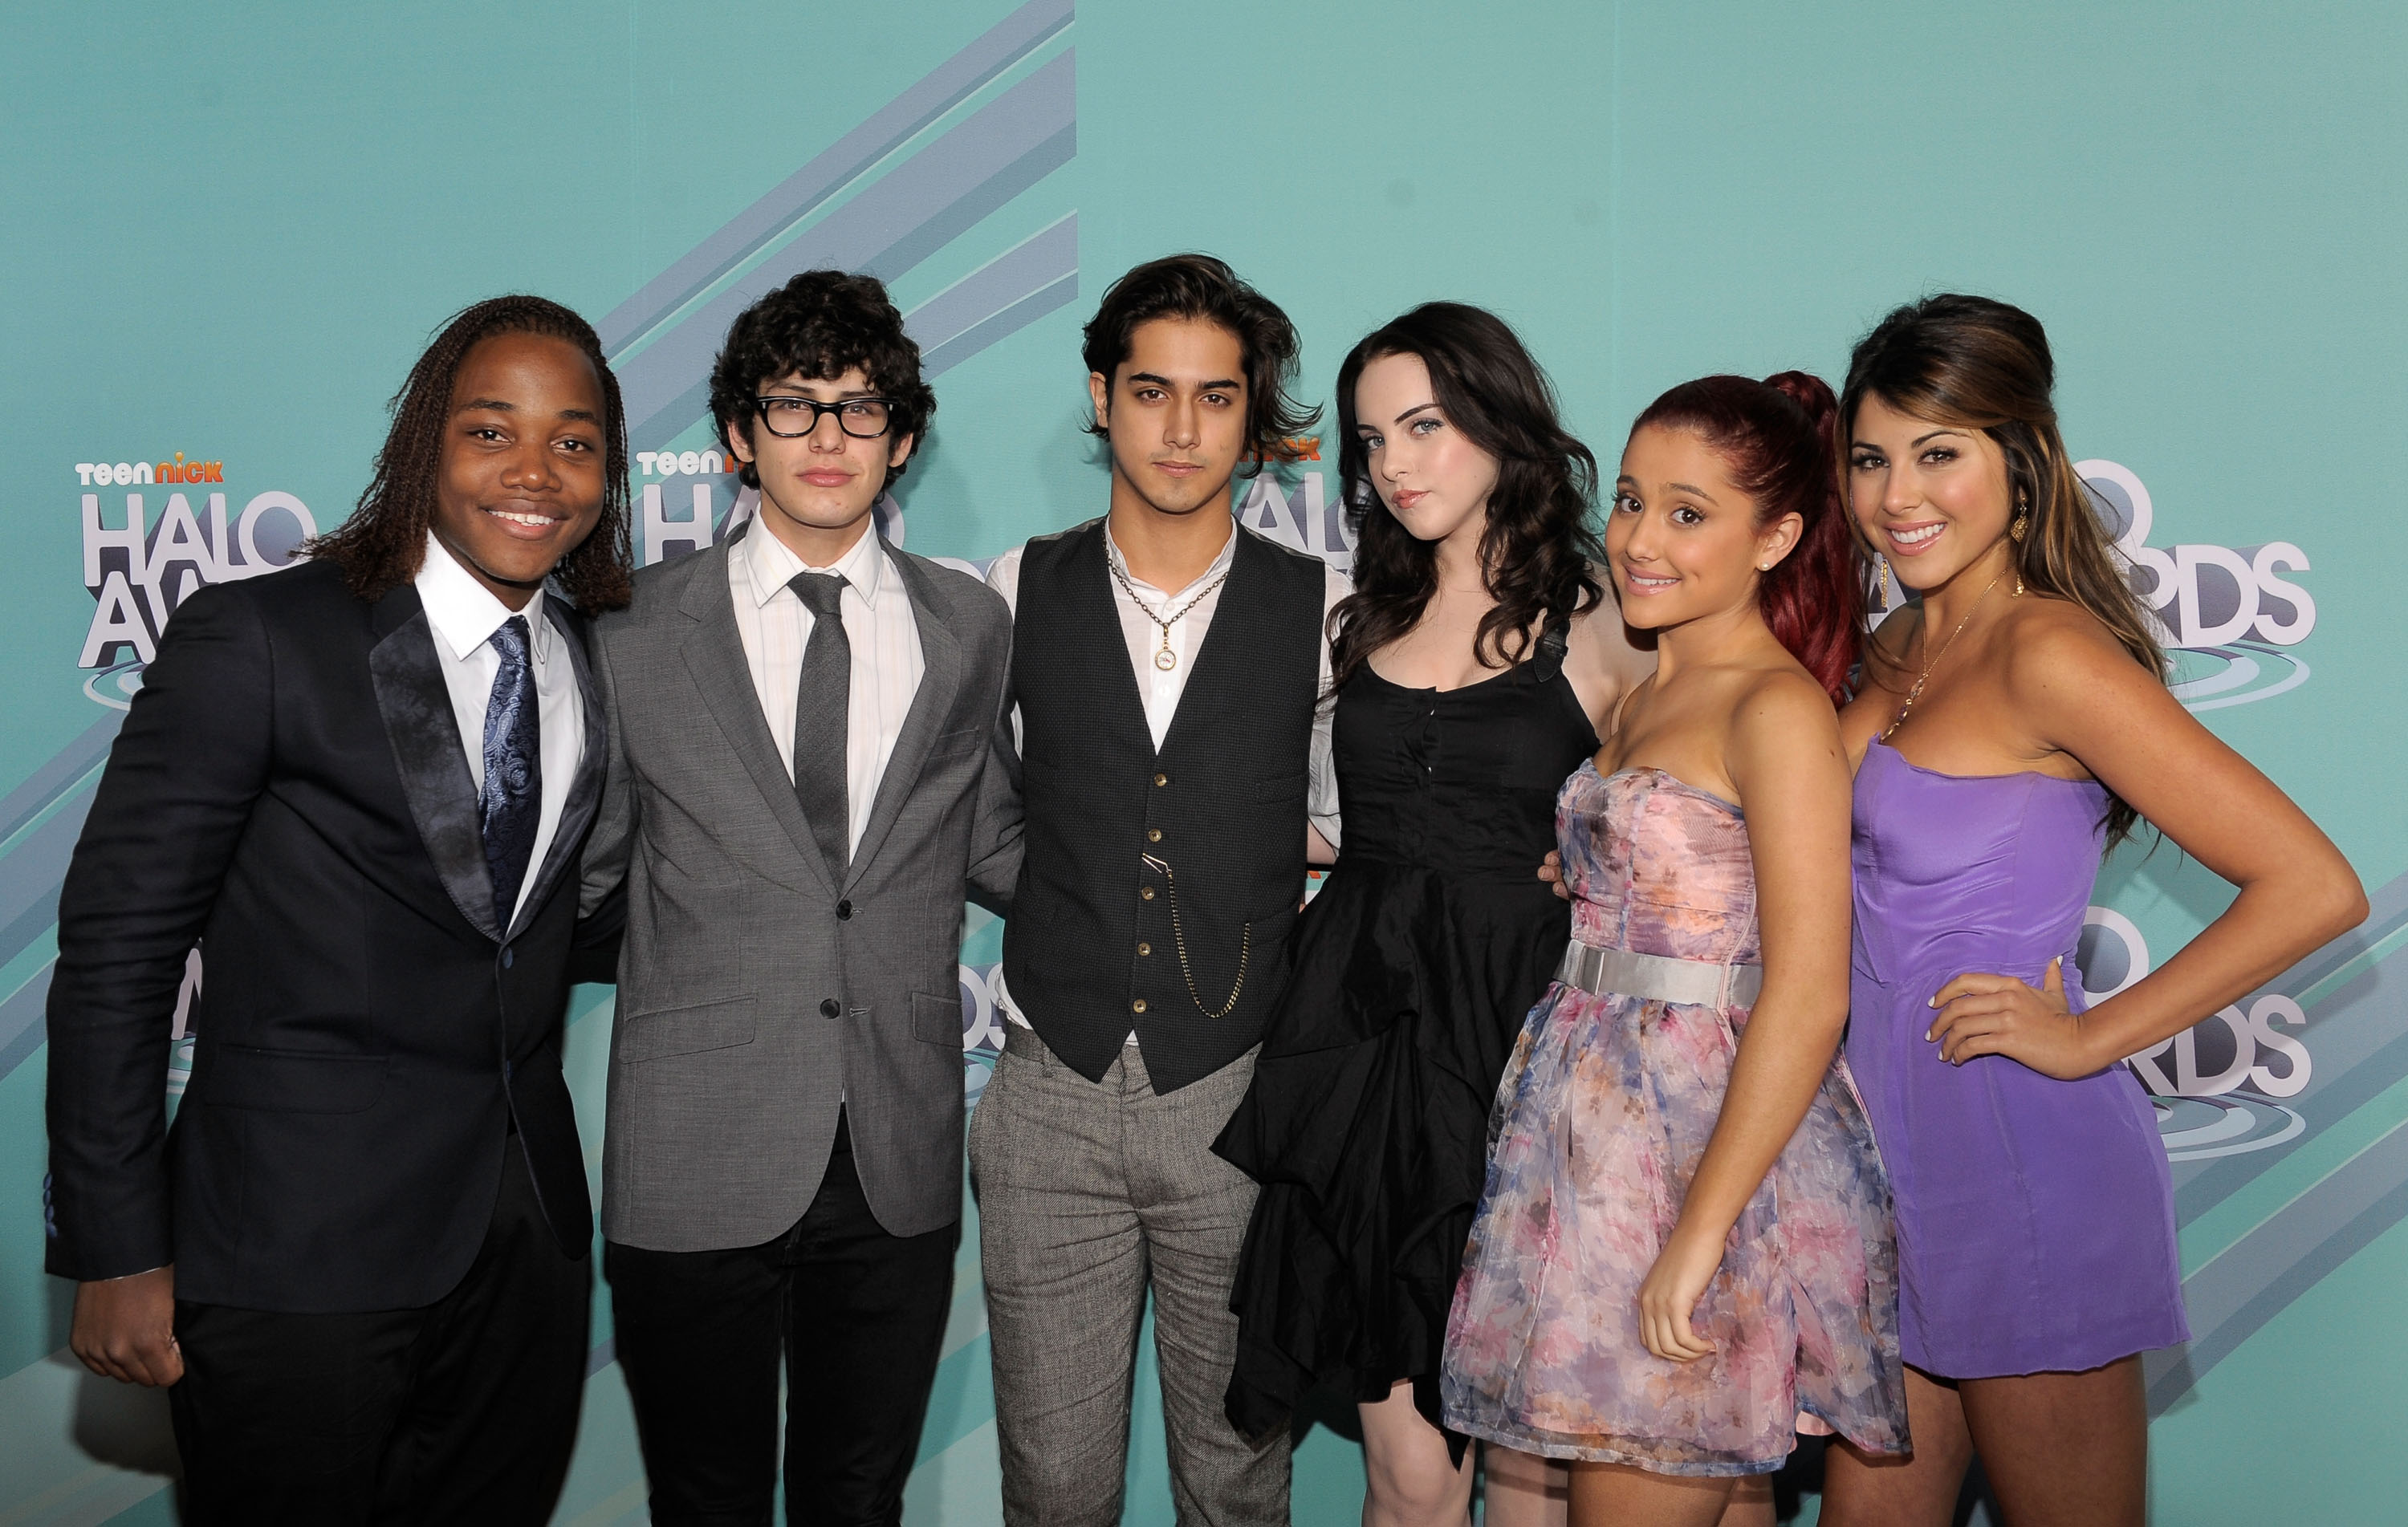 The cast of 'Victorious' (L-R) Leon Thomas III, Matt Bennett, Avan Jogia, Elizabeth Gillies, Ariana Grande and Daniella Monet arrive at the 3rd Annual TeenNick HALO Awards at Hollywood Palladium on October 26, 2011, in Hollywood, California. (Getty Images)